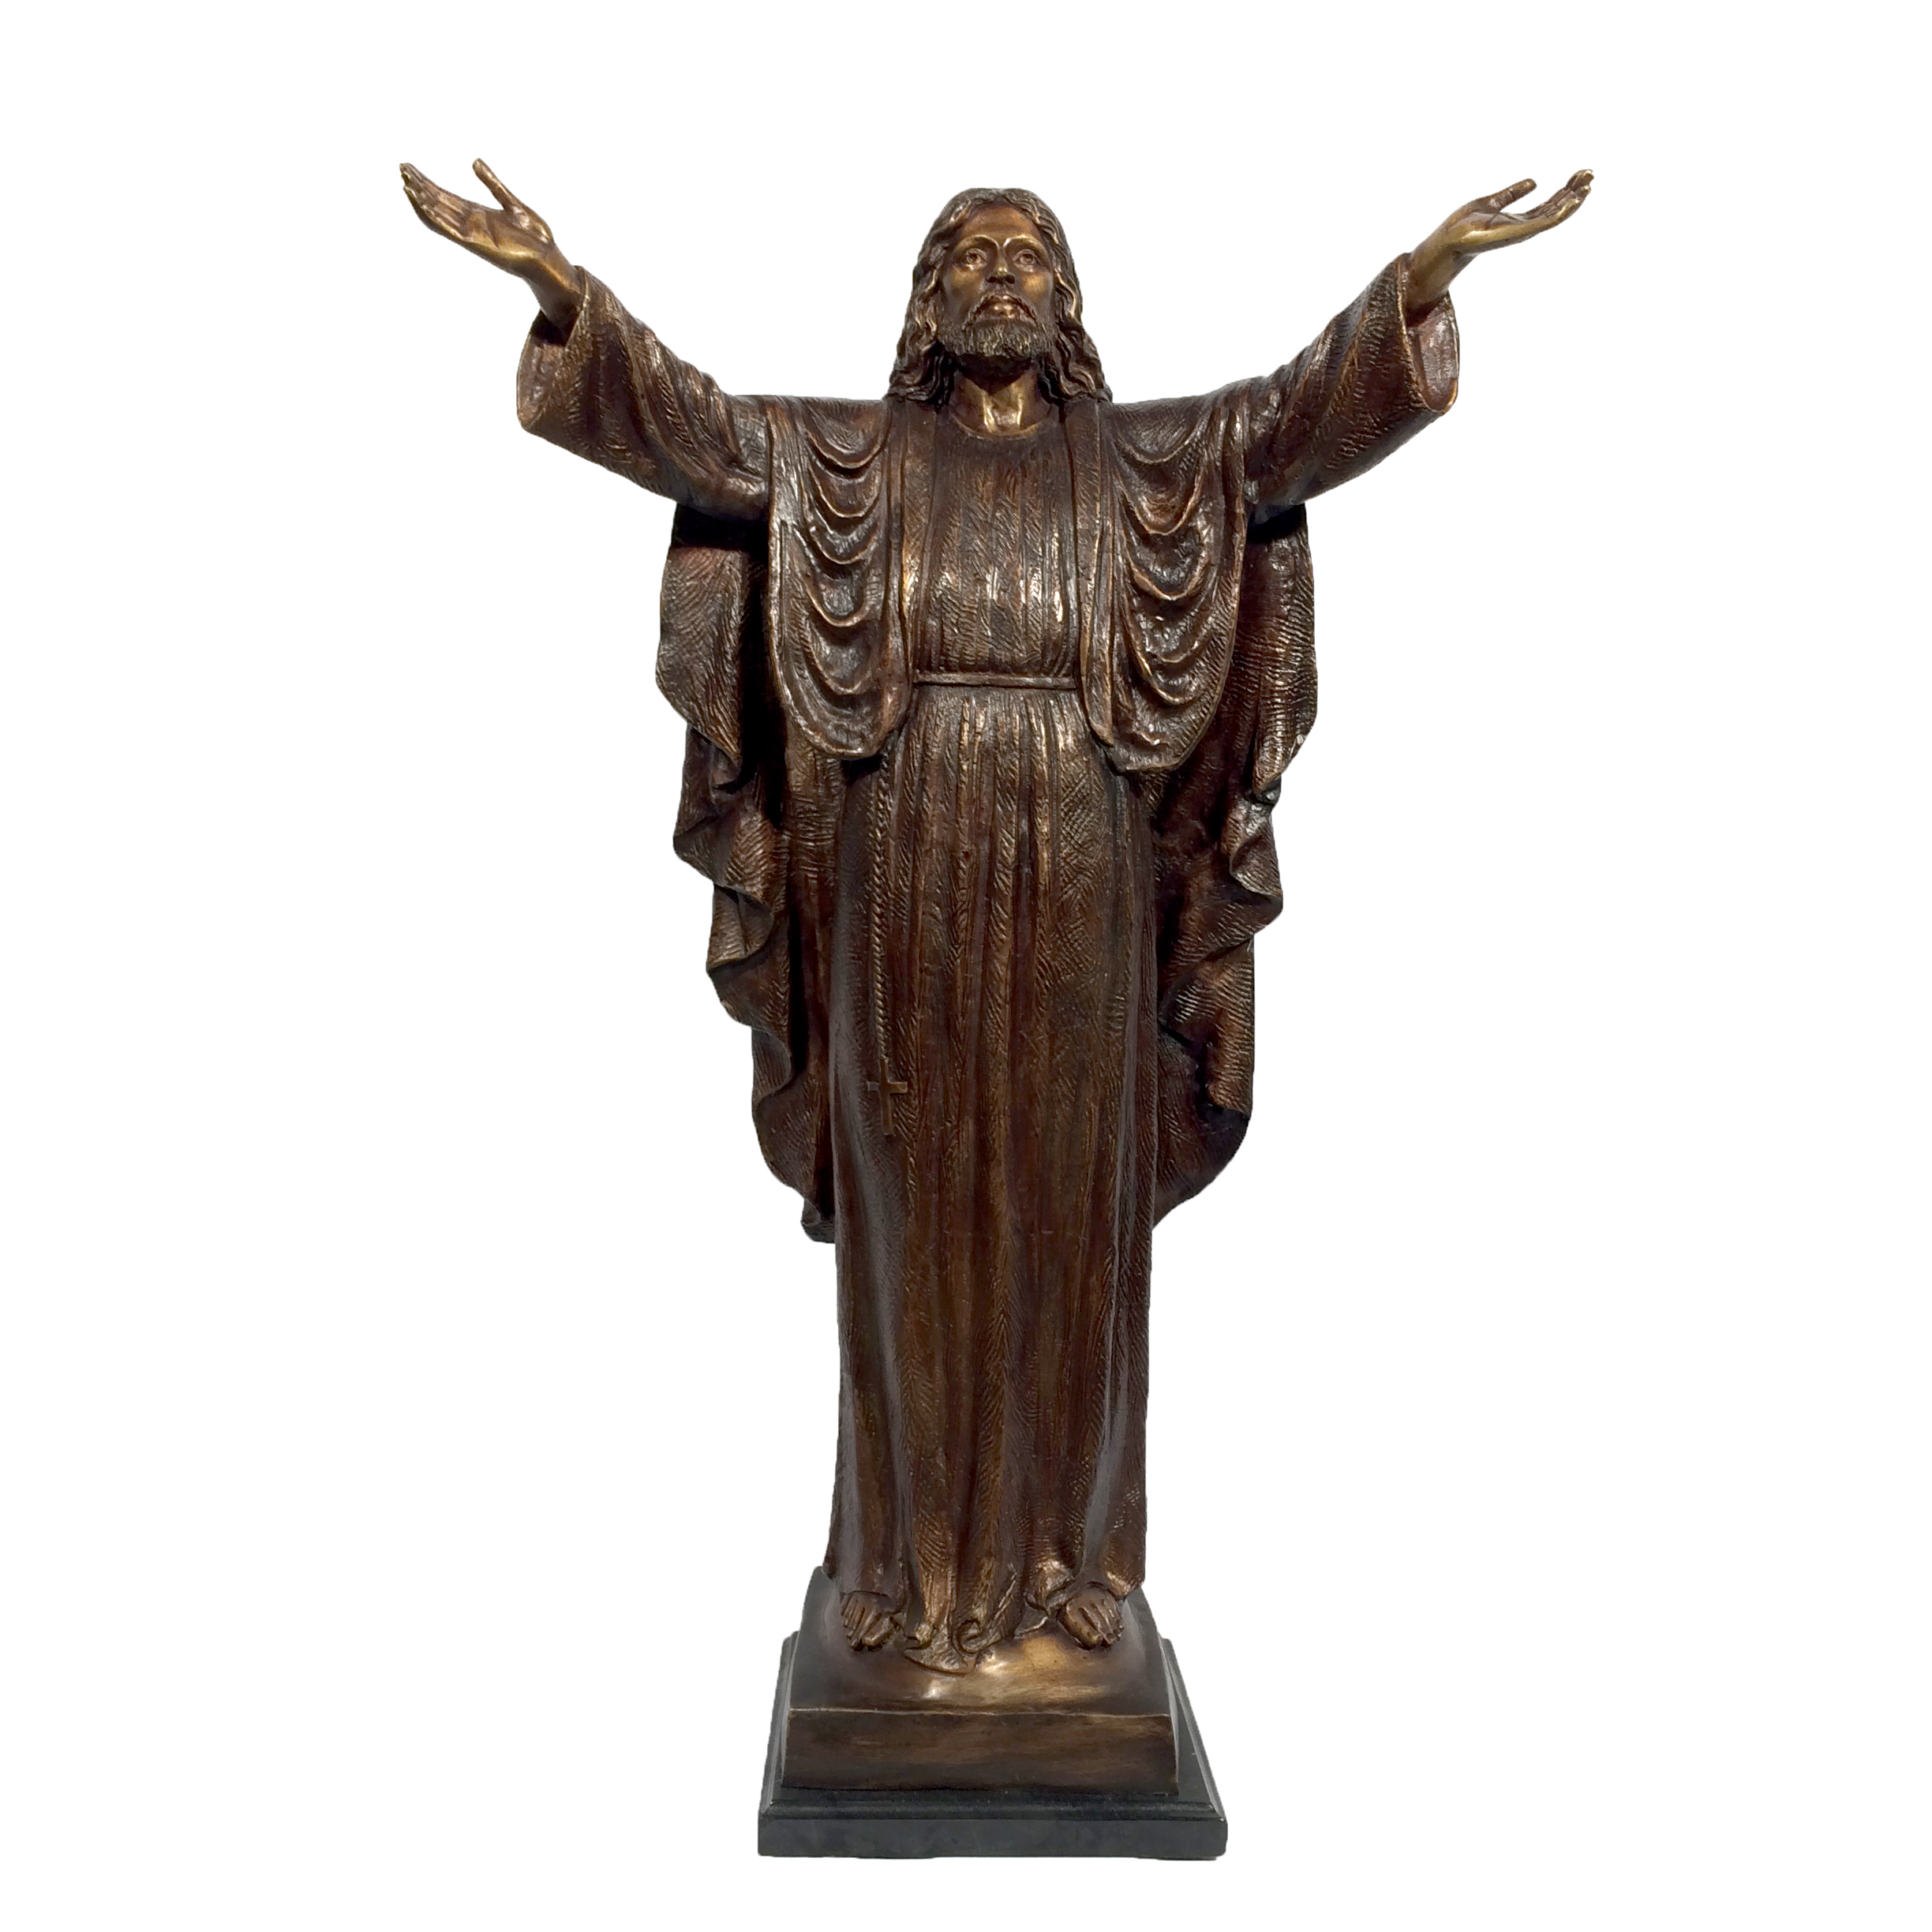 SRB029505 Bronze Jesus with Arms Open Sculpture Metropolitan Galleries Inc.